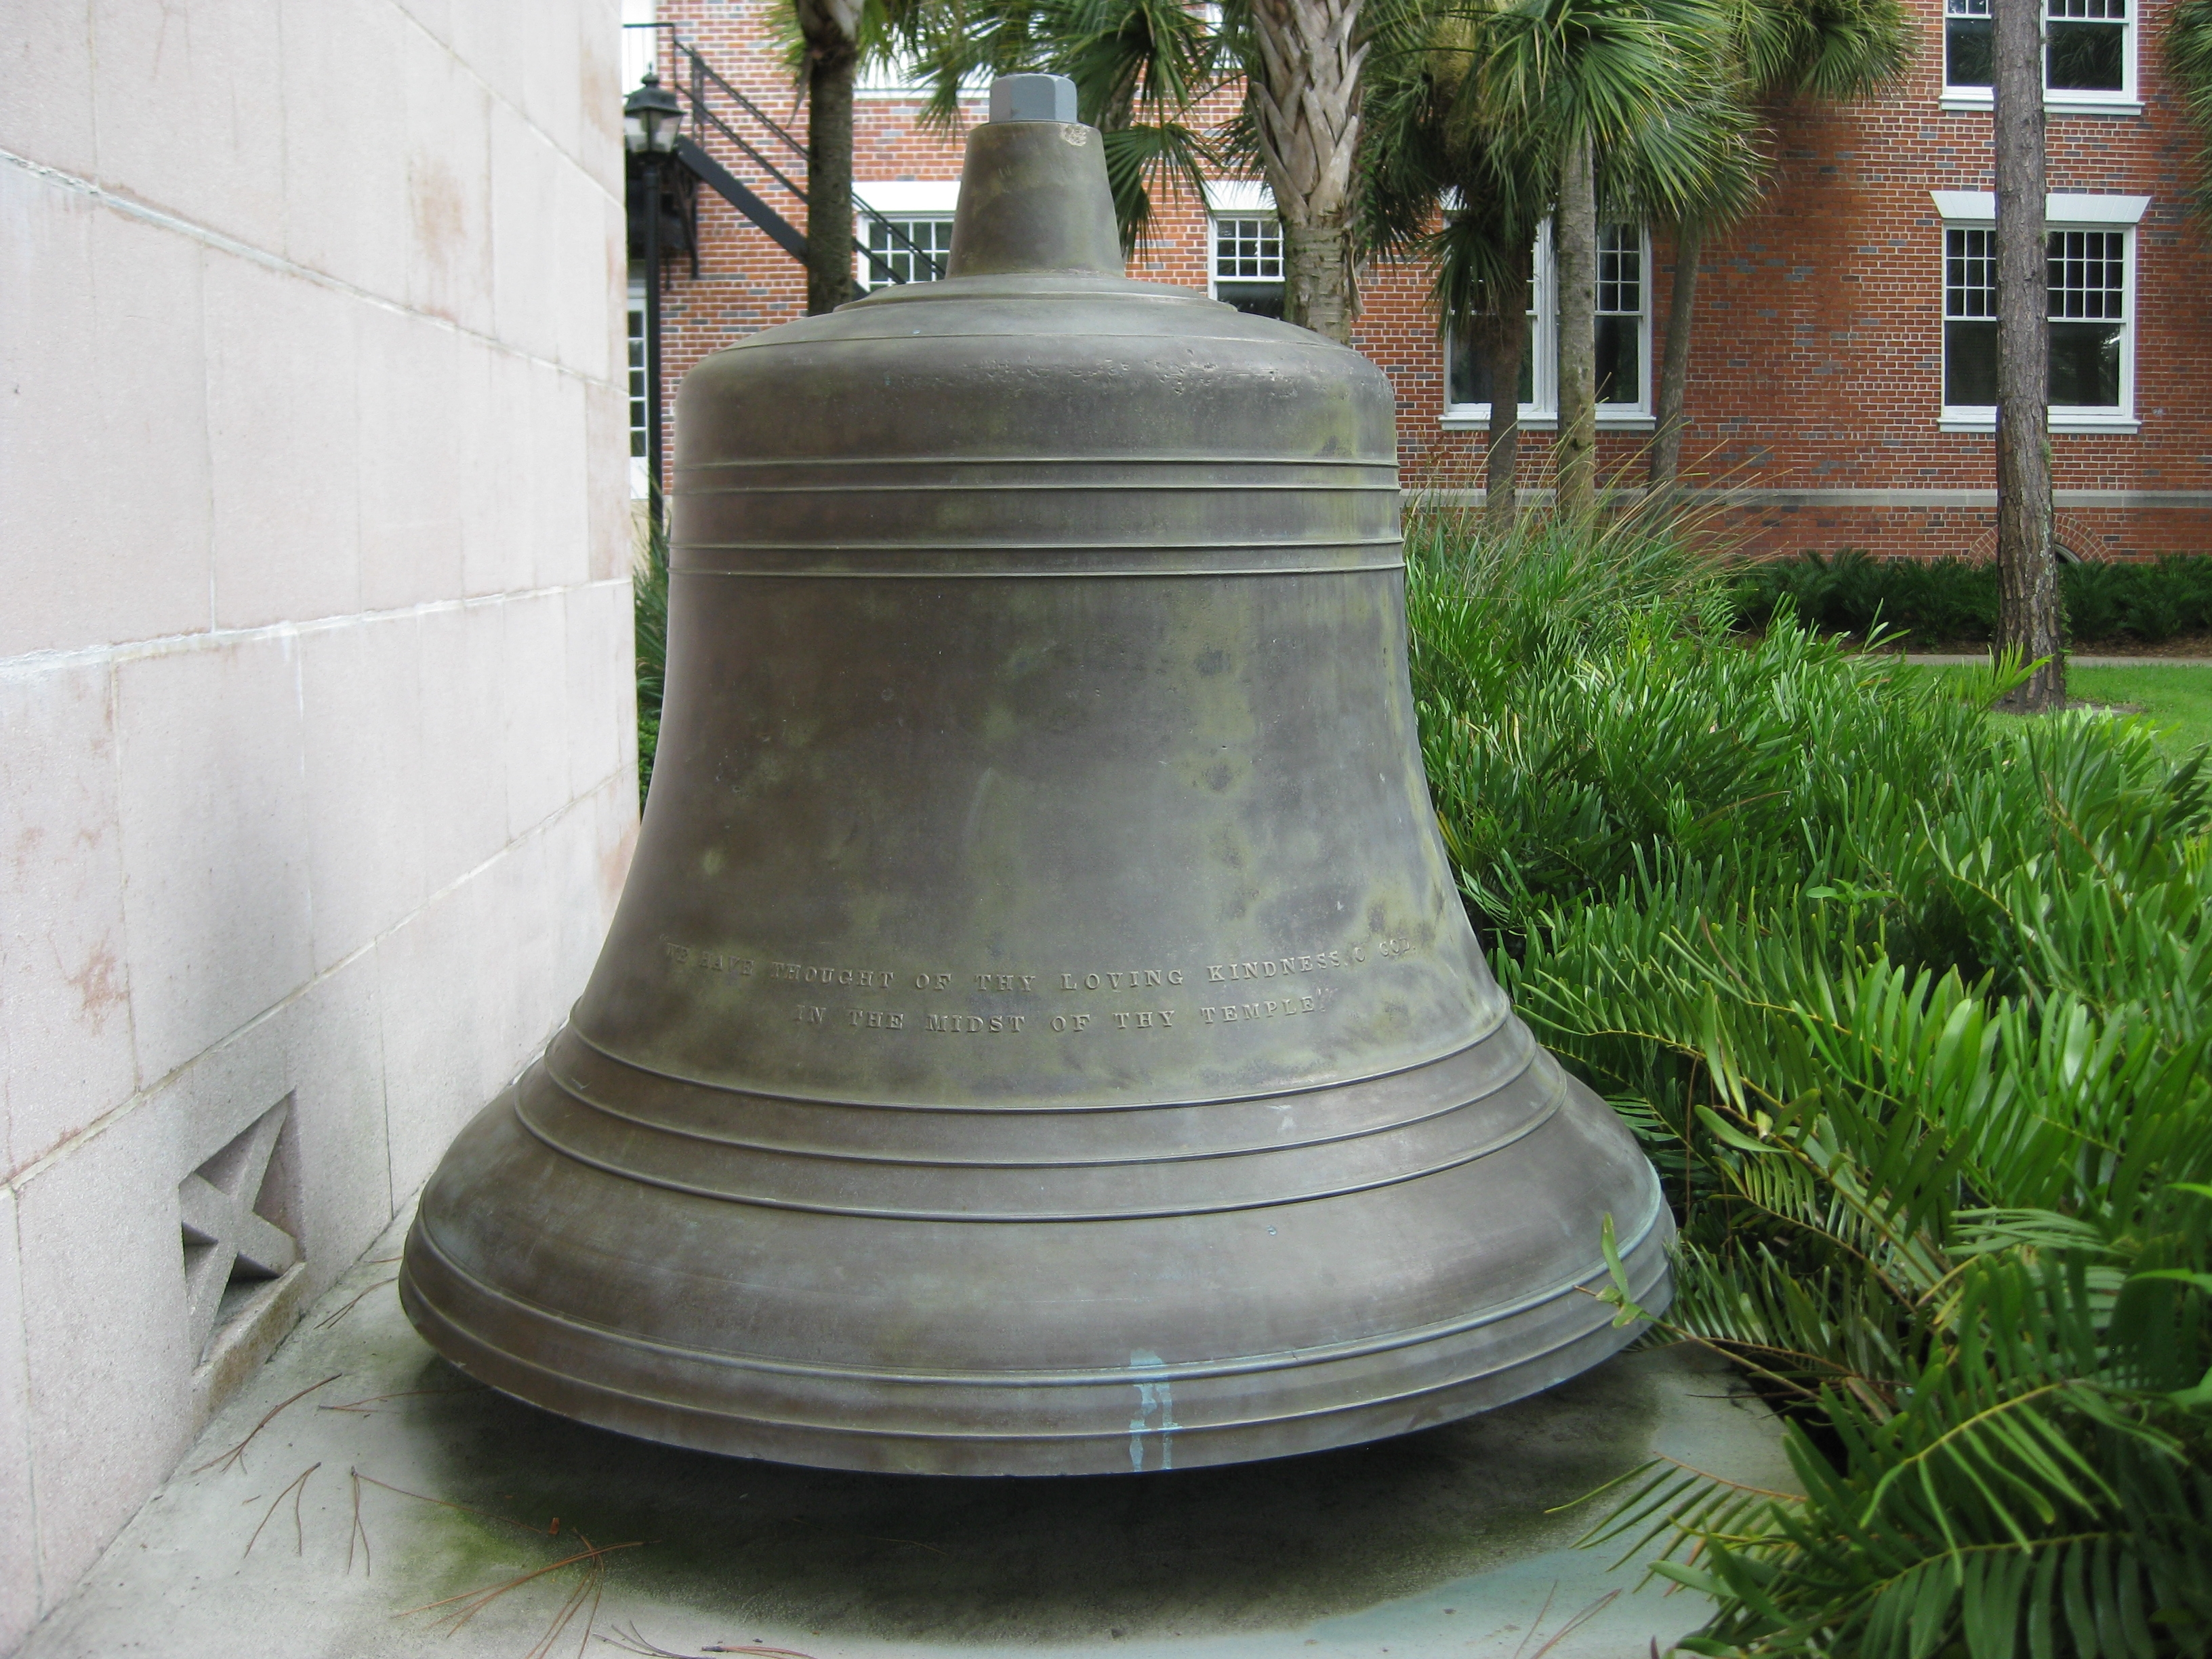 Bell outside Hulley Tower